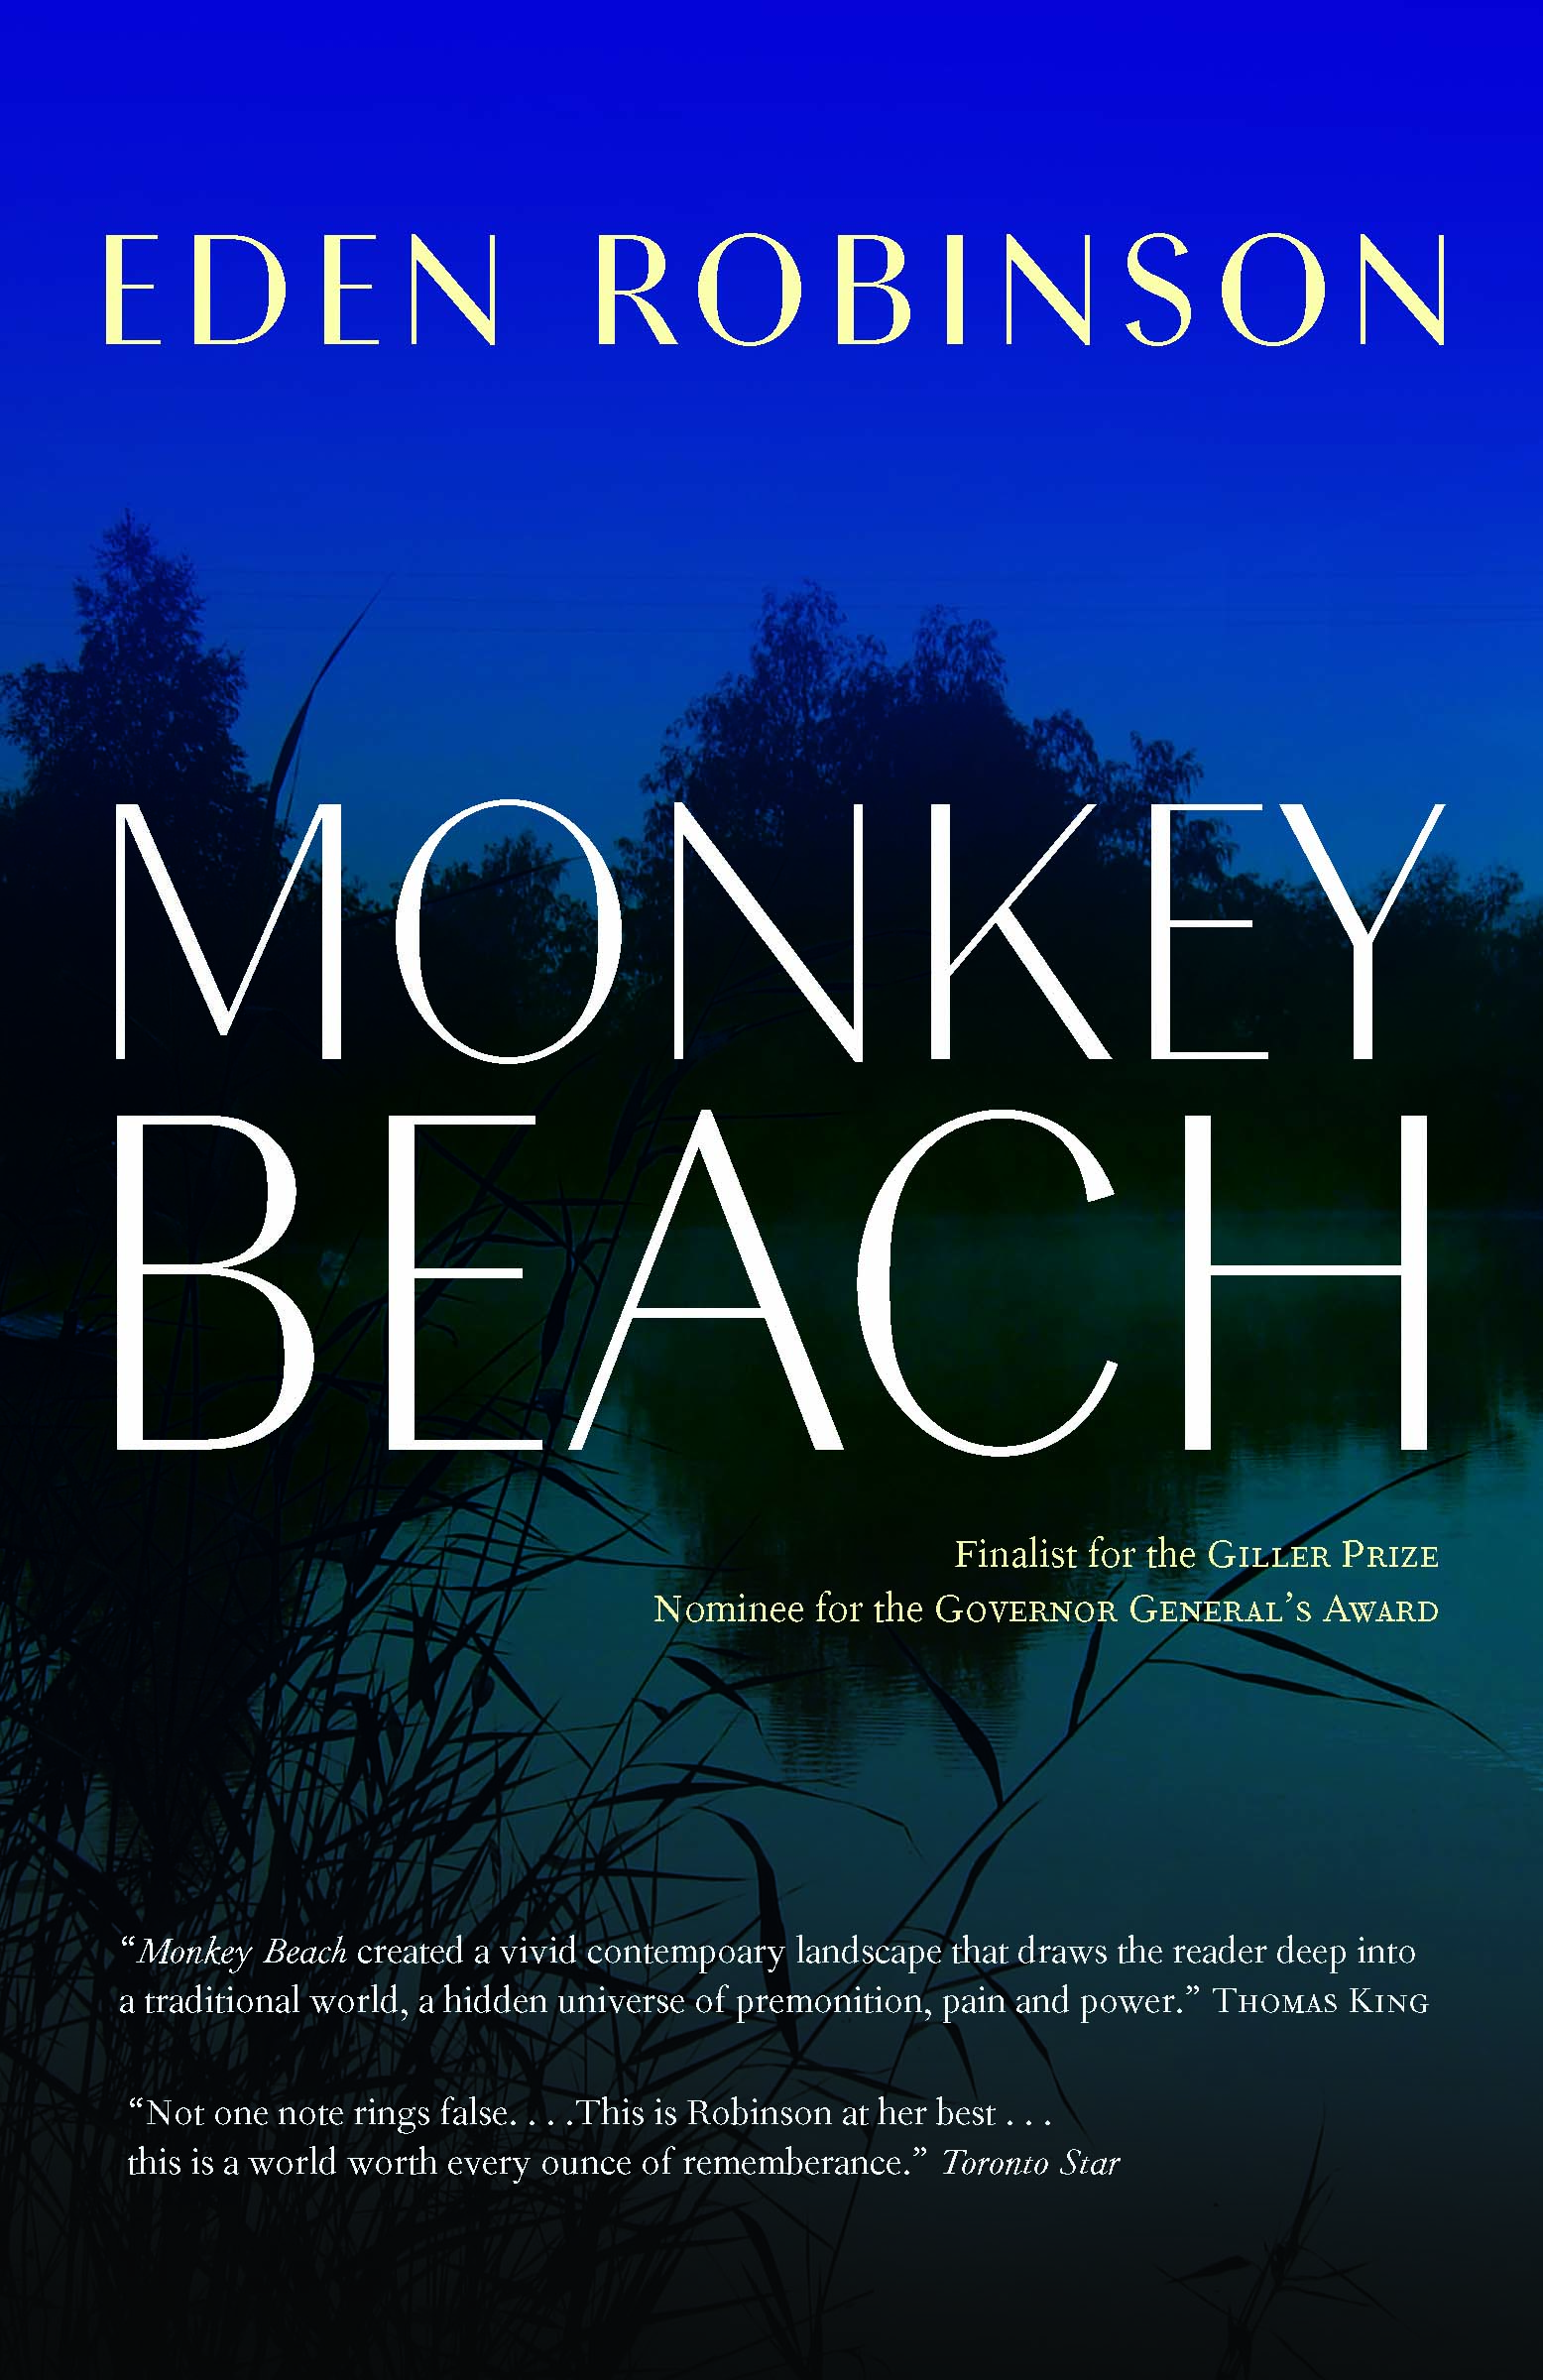 """christianity in monkey beach by eden robinson Monkey beach study guide an in-depth study guide for monkey beach by eden robinson (ayyyy lmfao) april 30, 2015 may 1, 2015 connections and passages connections part 1: in the famous novel """"to kill a mockingbird"""", the protagonist takes part in a journey where she familiarizes herself with 4 life lessons the protagonist."""